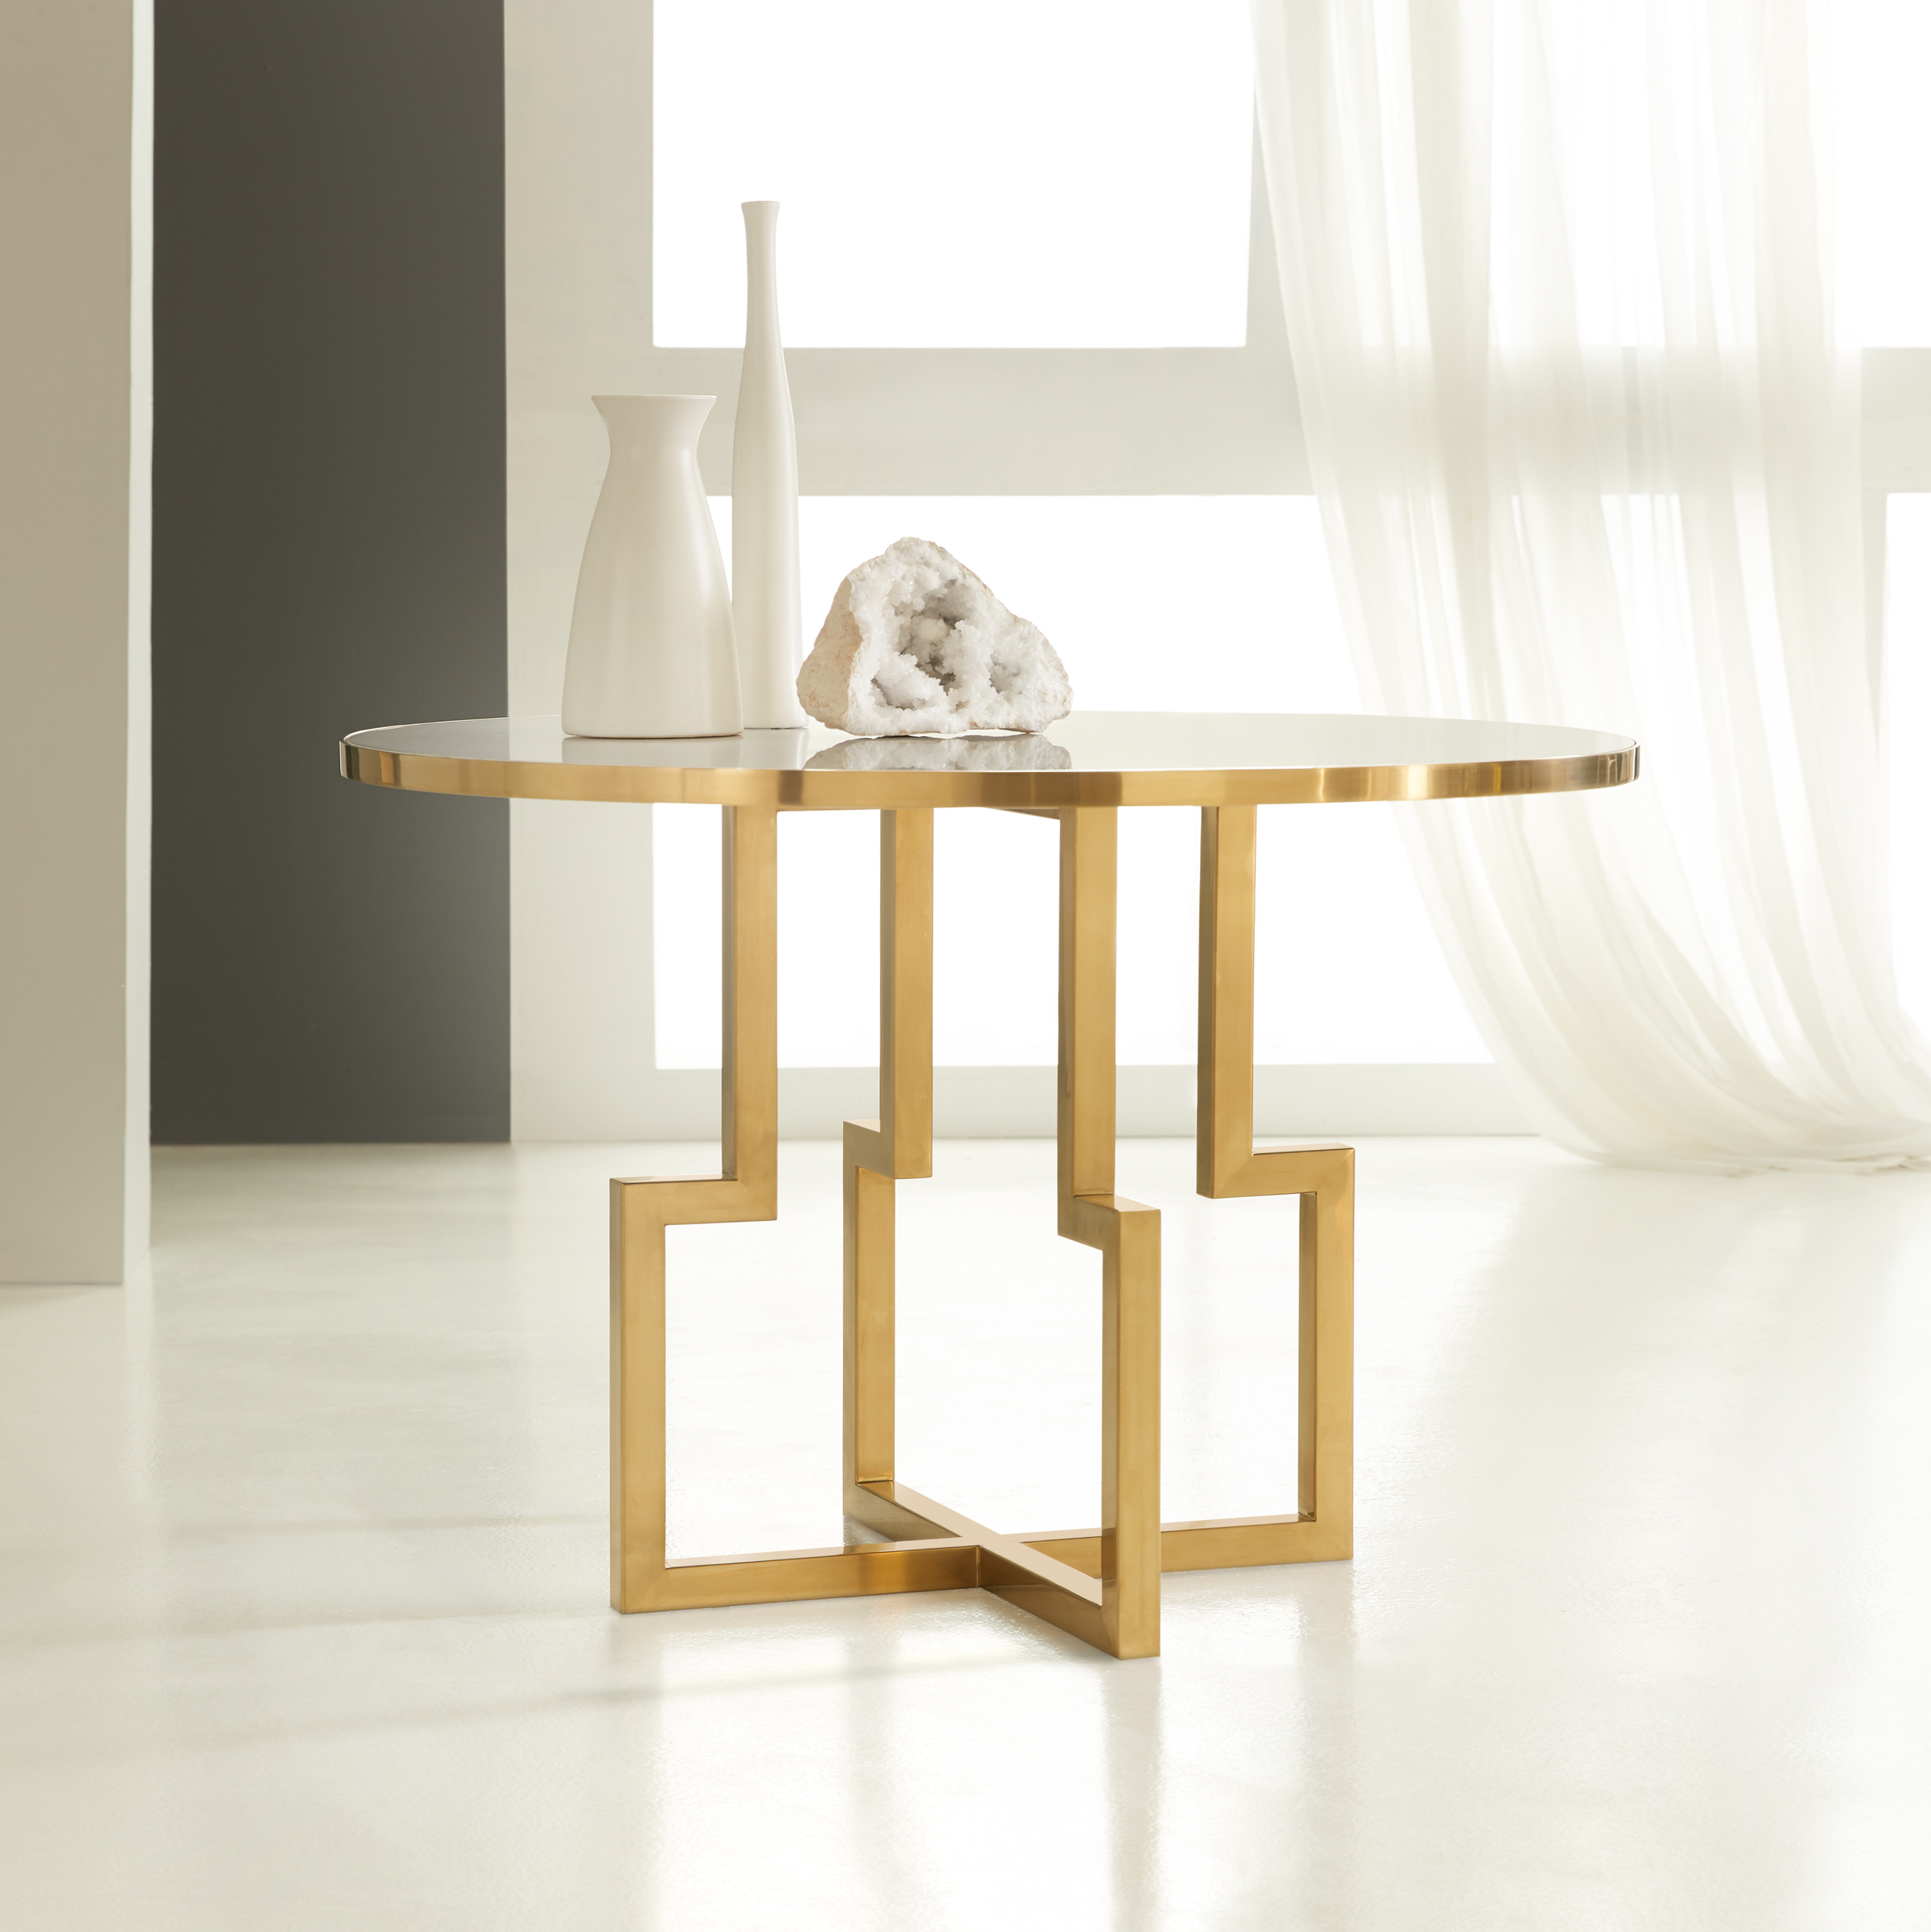 Center Table White Acrylic MHX 19